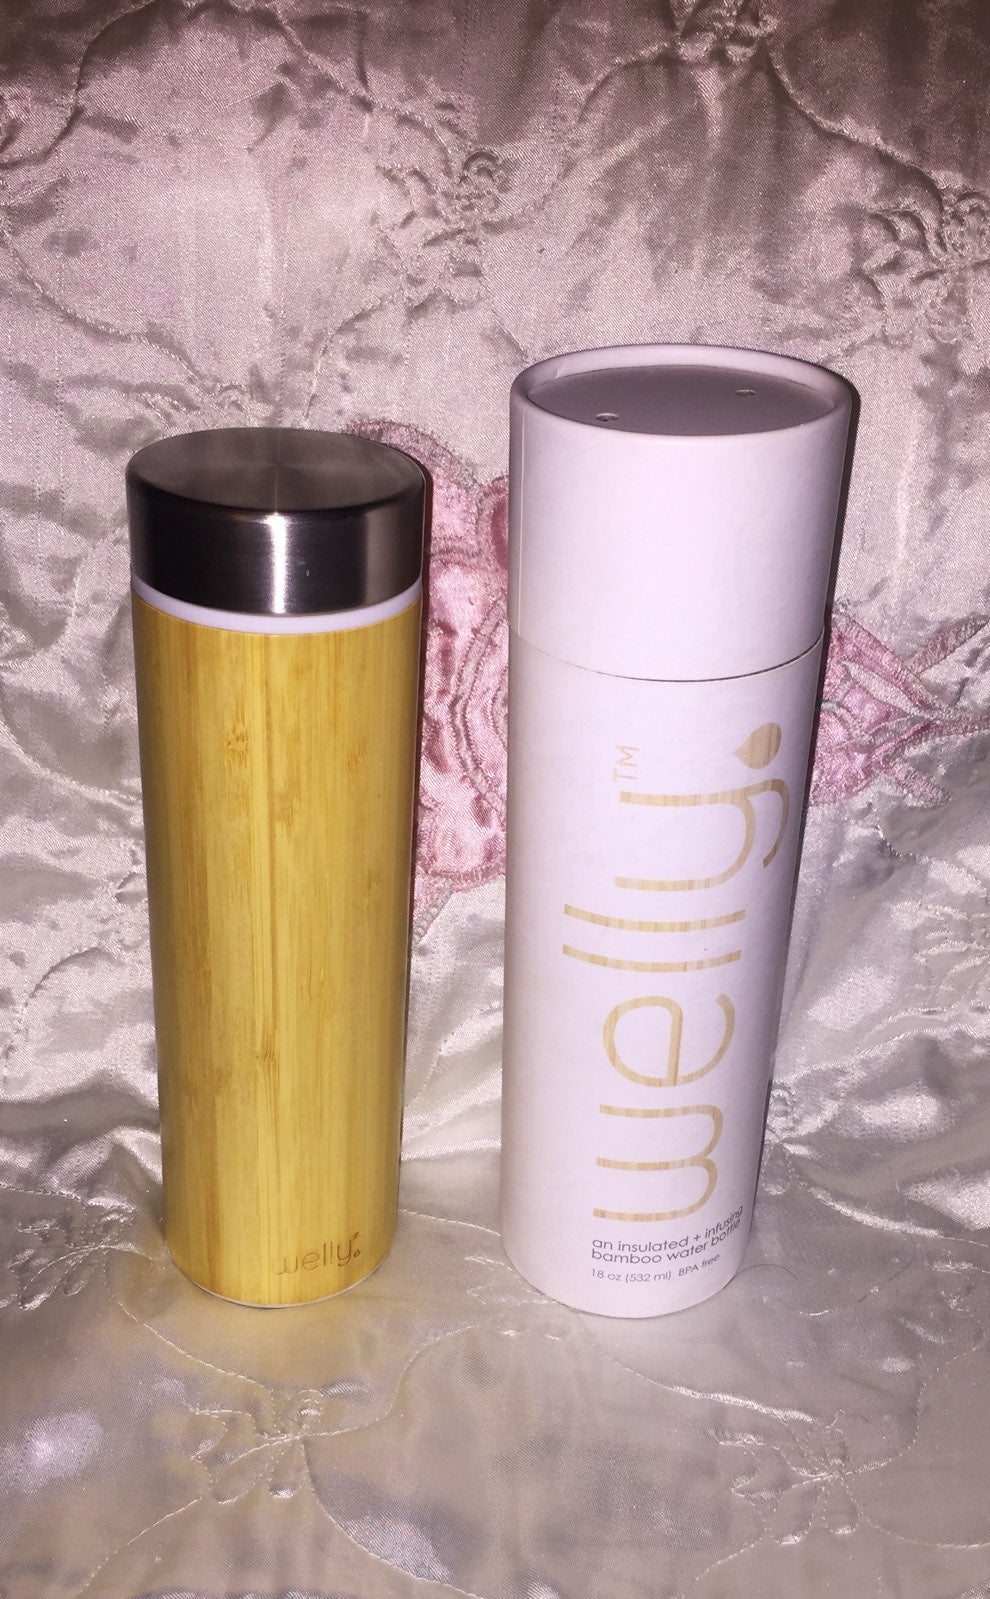 Welly Insulated Bamboo Water Bottle